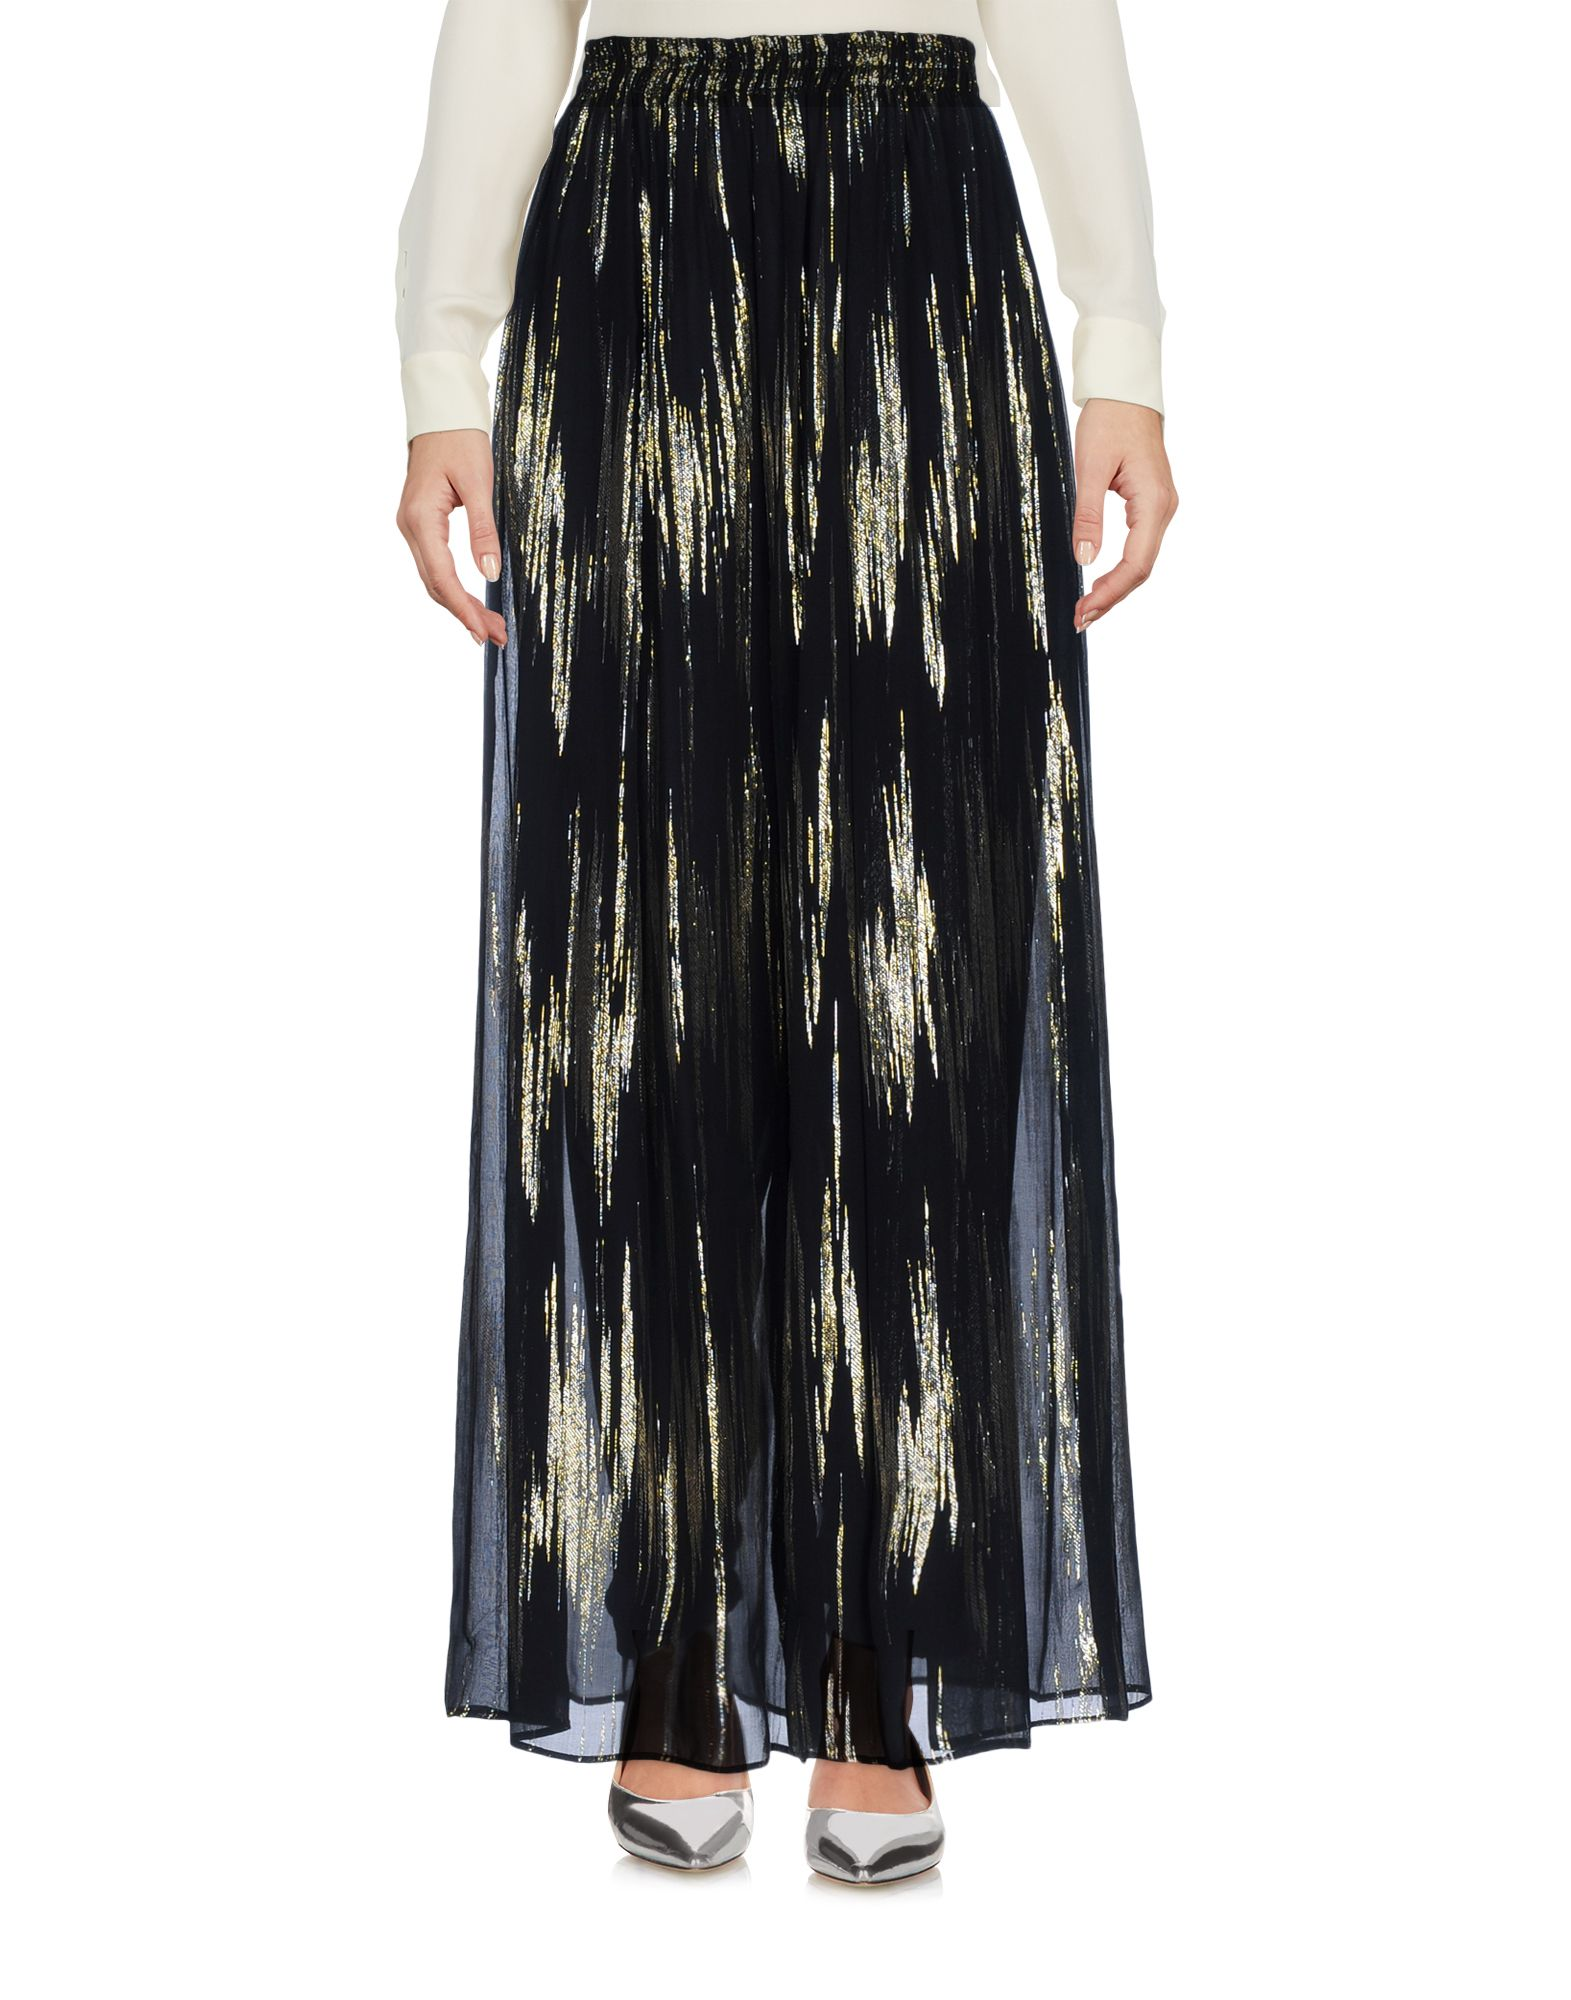 Gonna Lunga Space Style Concept Donna - Acquista online su aTlDP99DDR